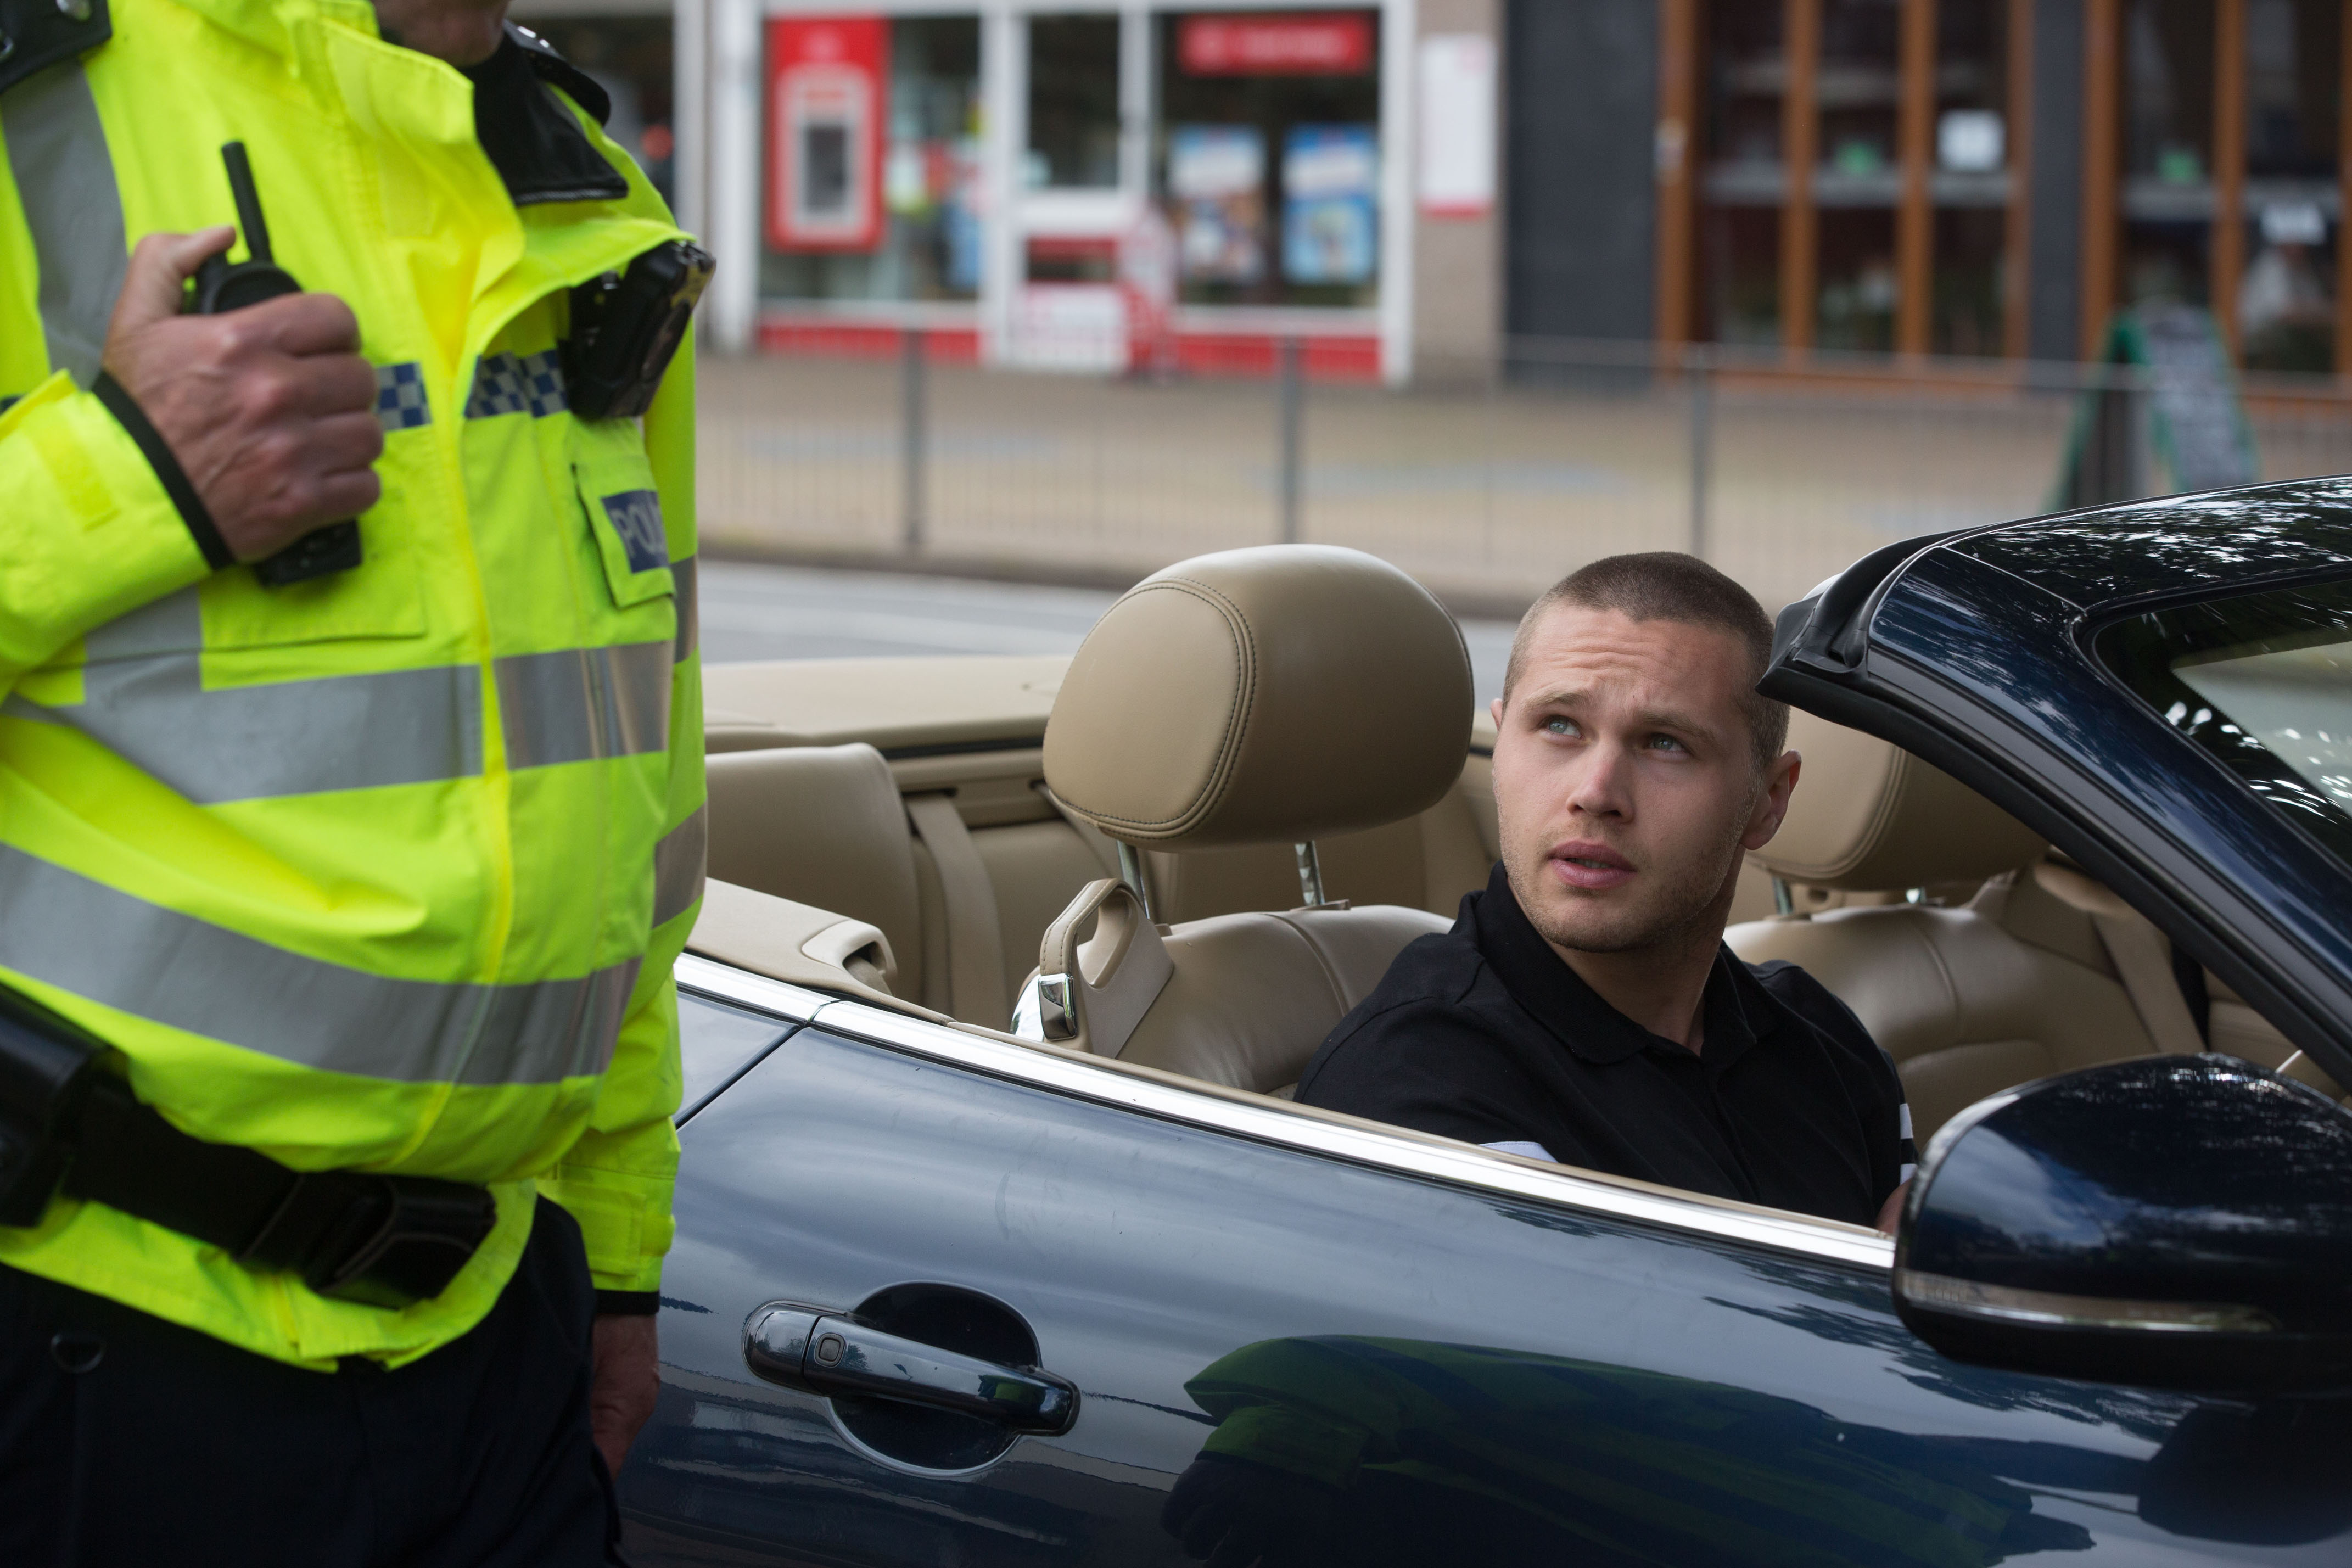 EastEnders SPOILER: Keanu is forced to flee from the police TONIGHT!